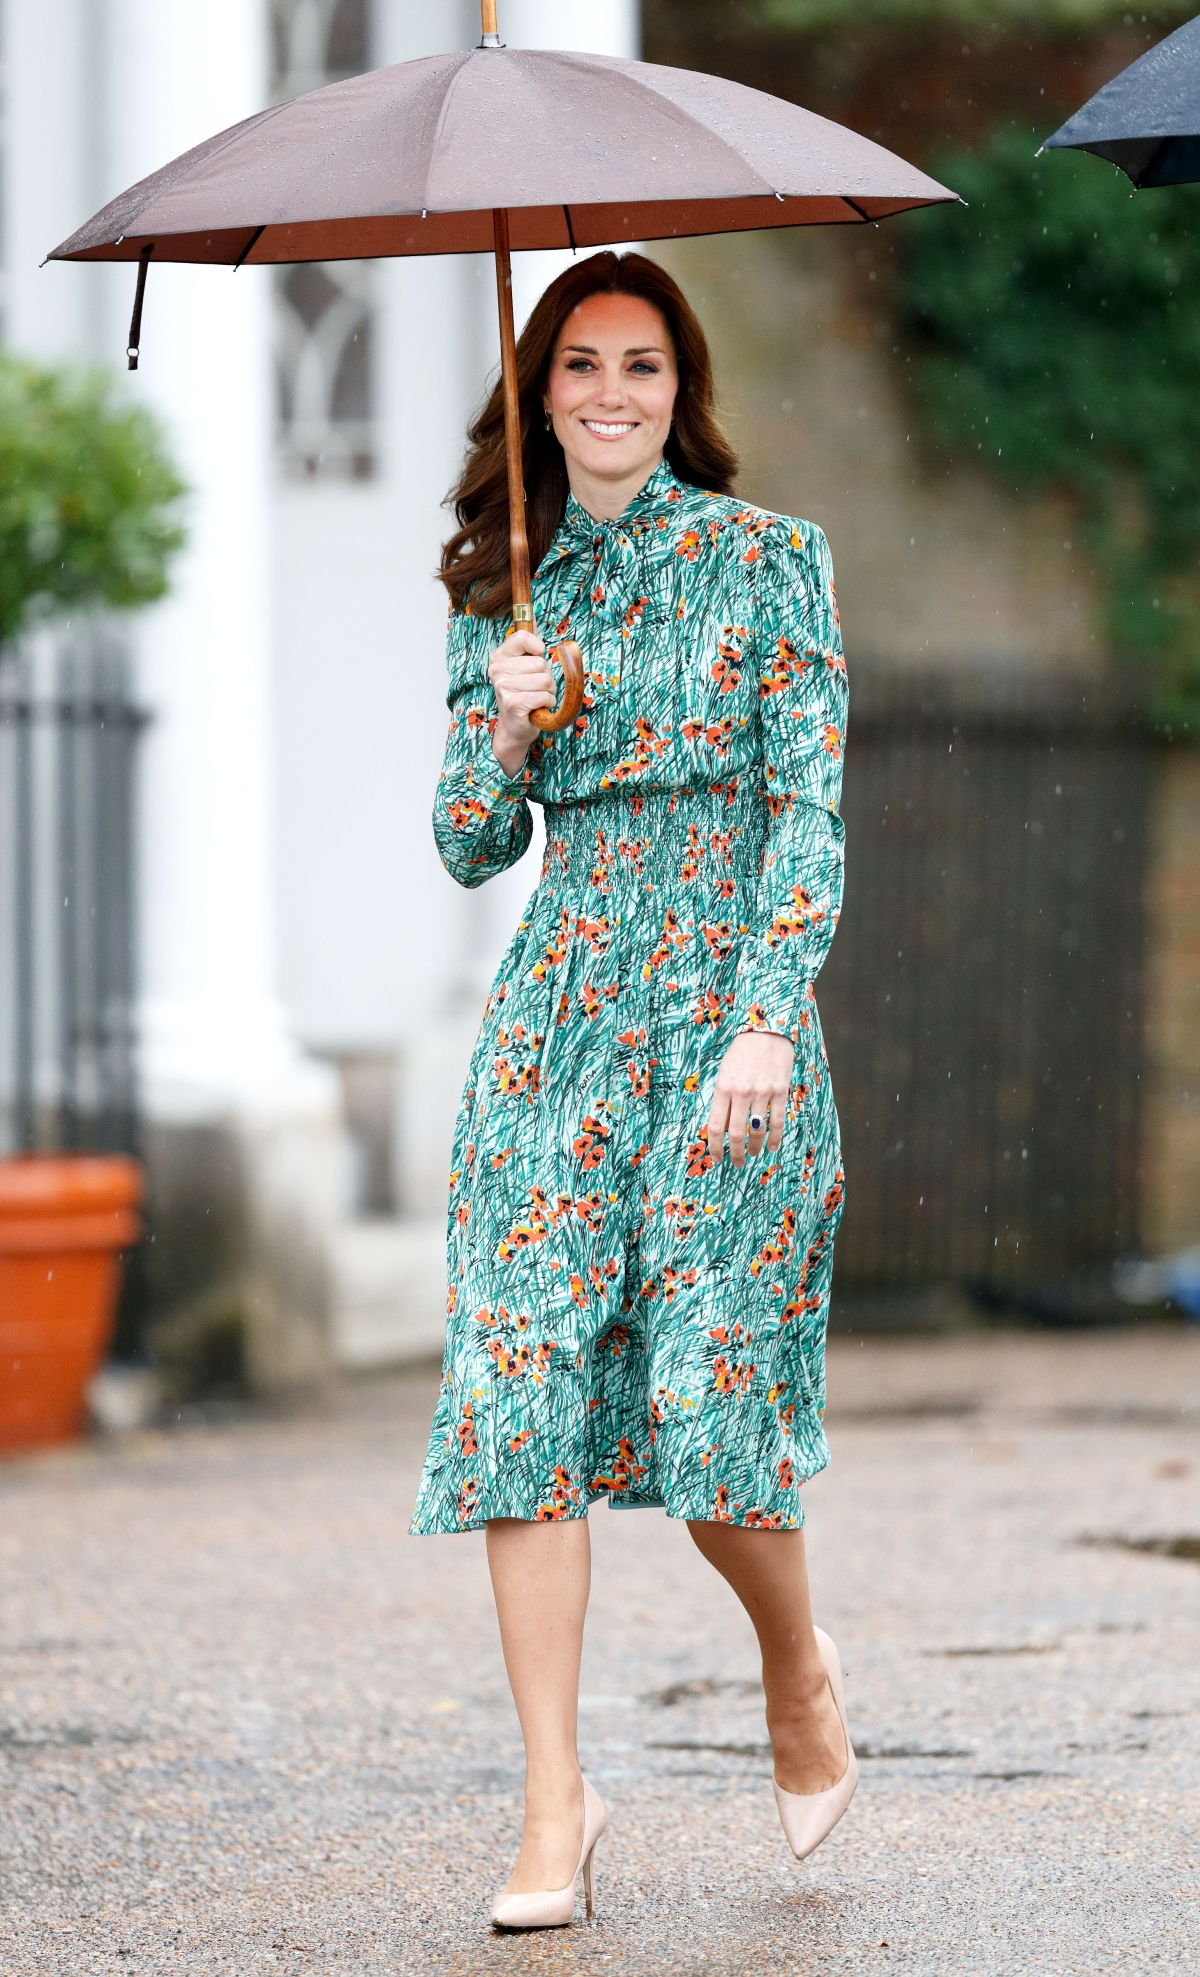 Kate Middleton Best Outfits of All Time: Pics